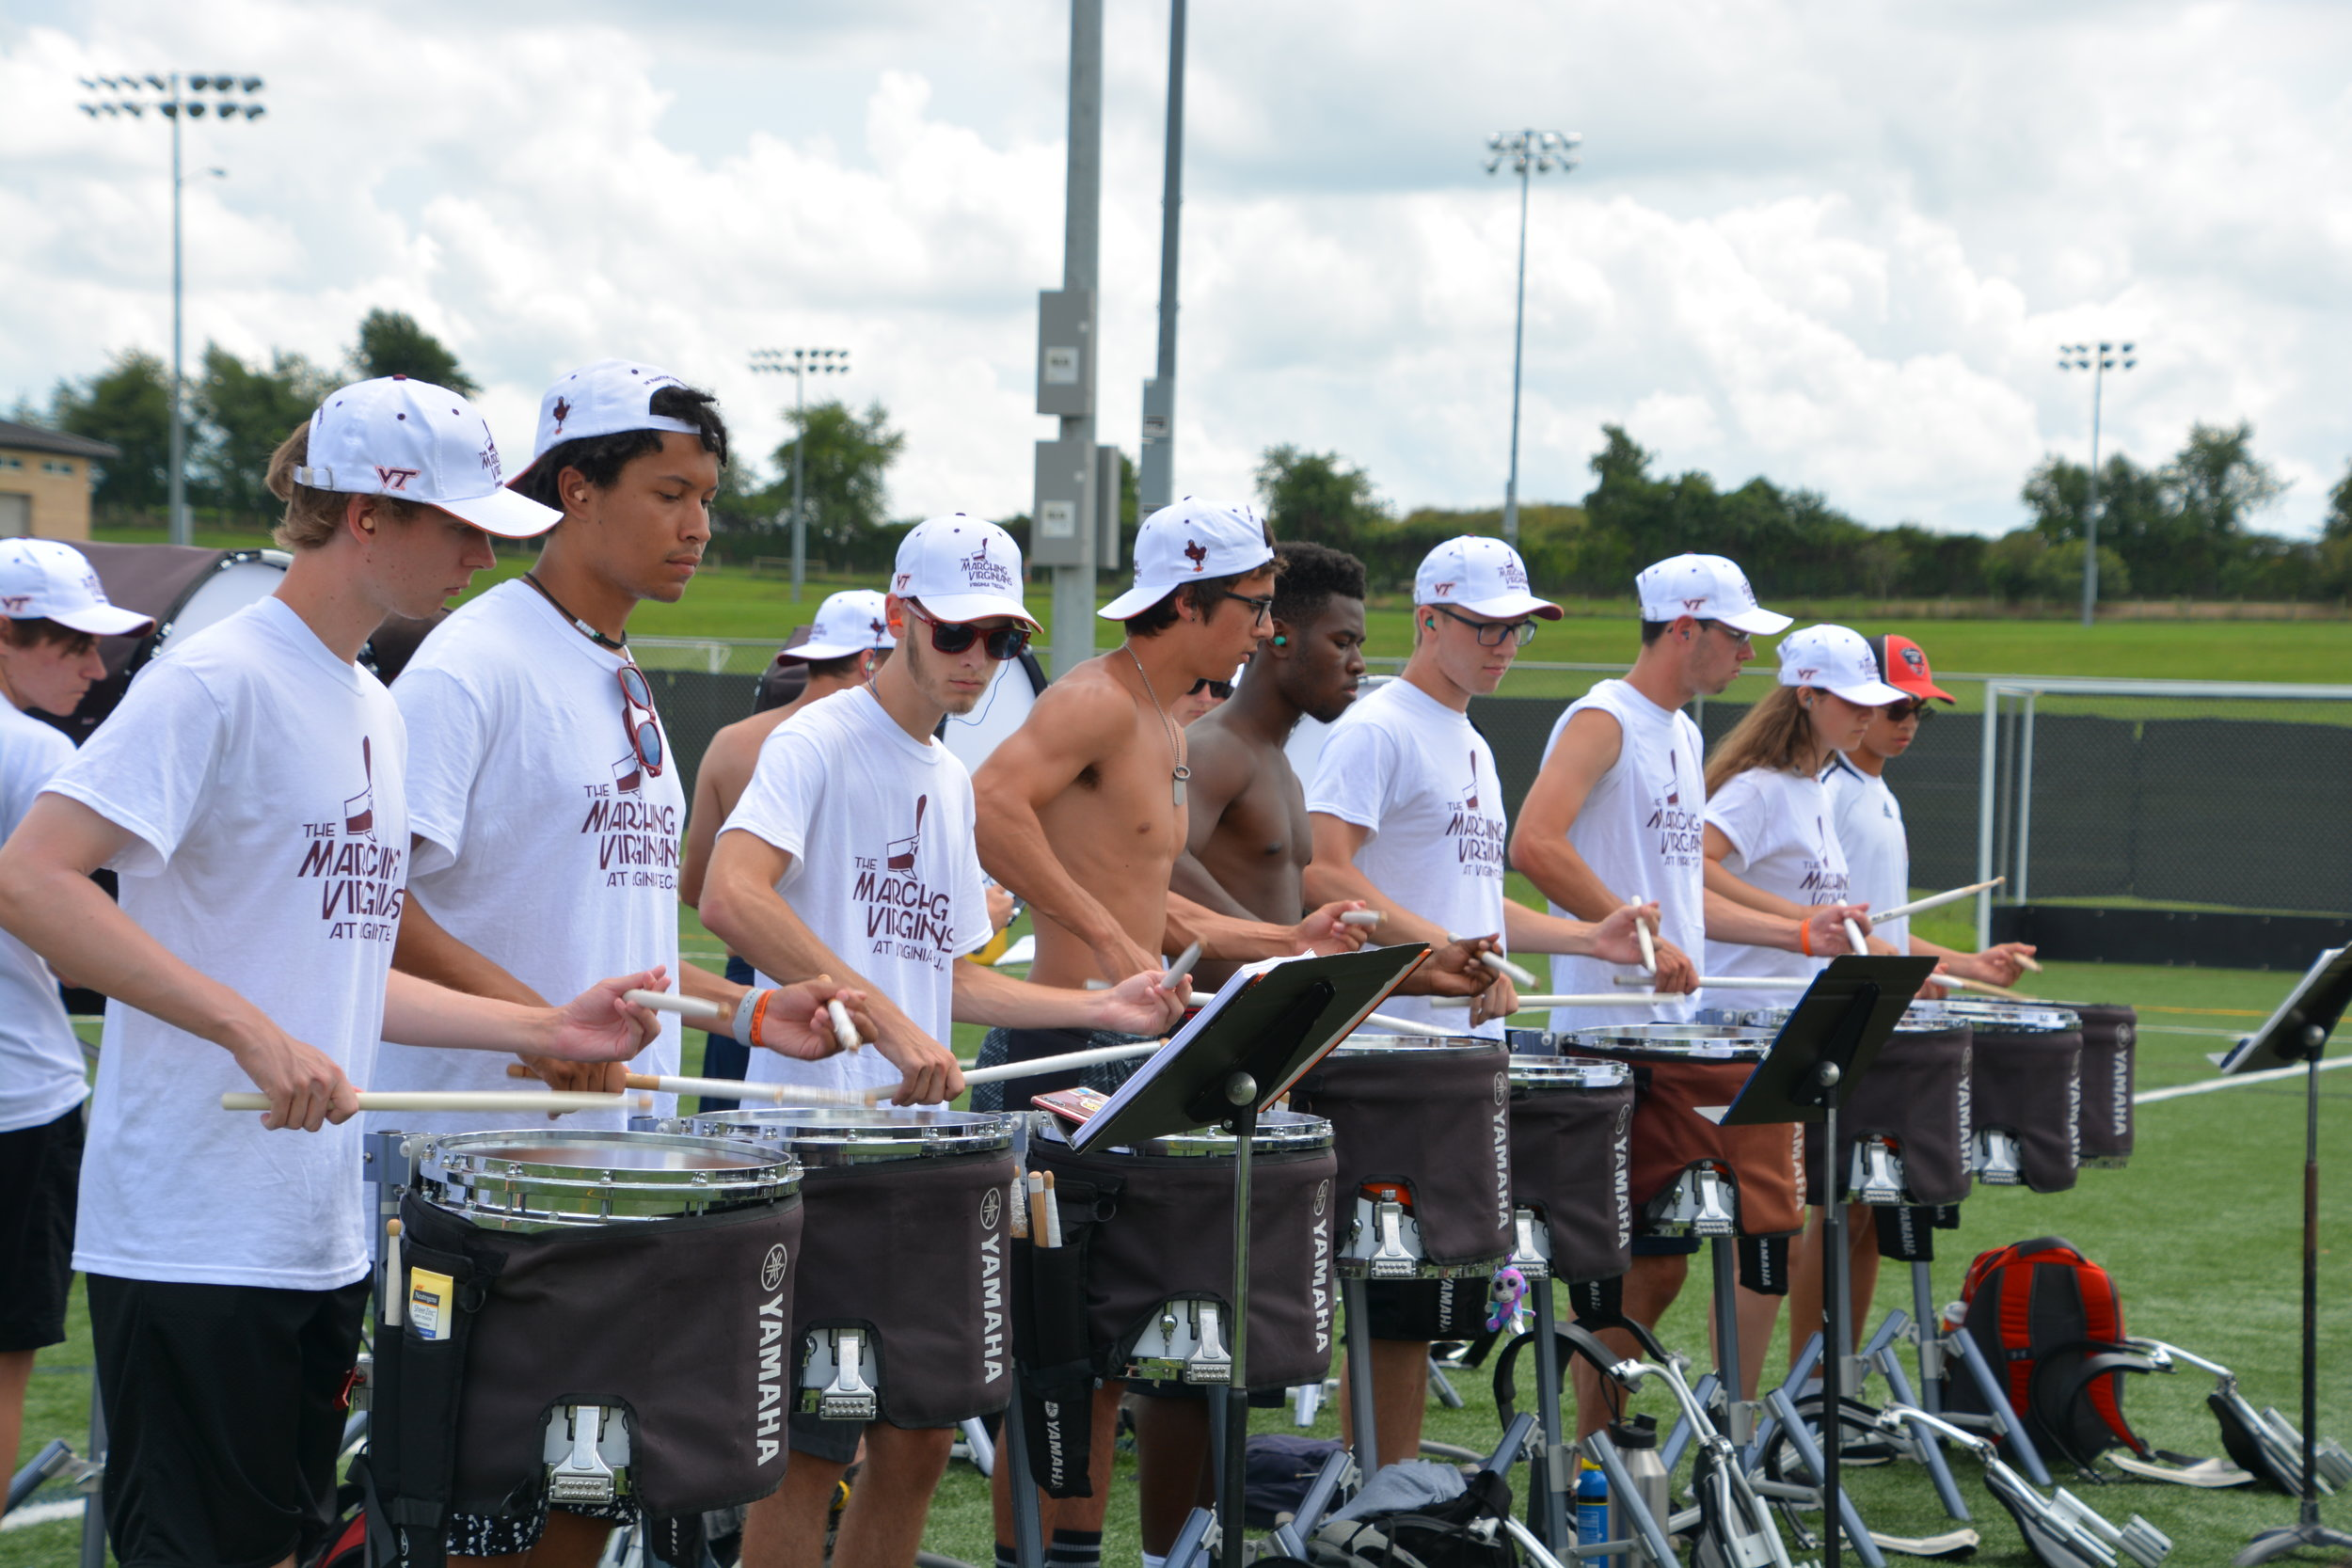 The snare line practicing during band camp; Source: Bob White